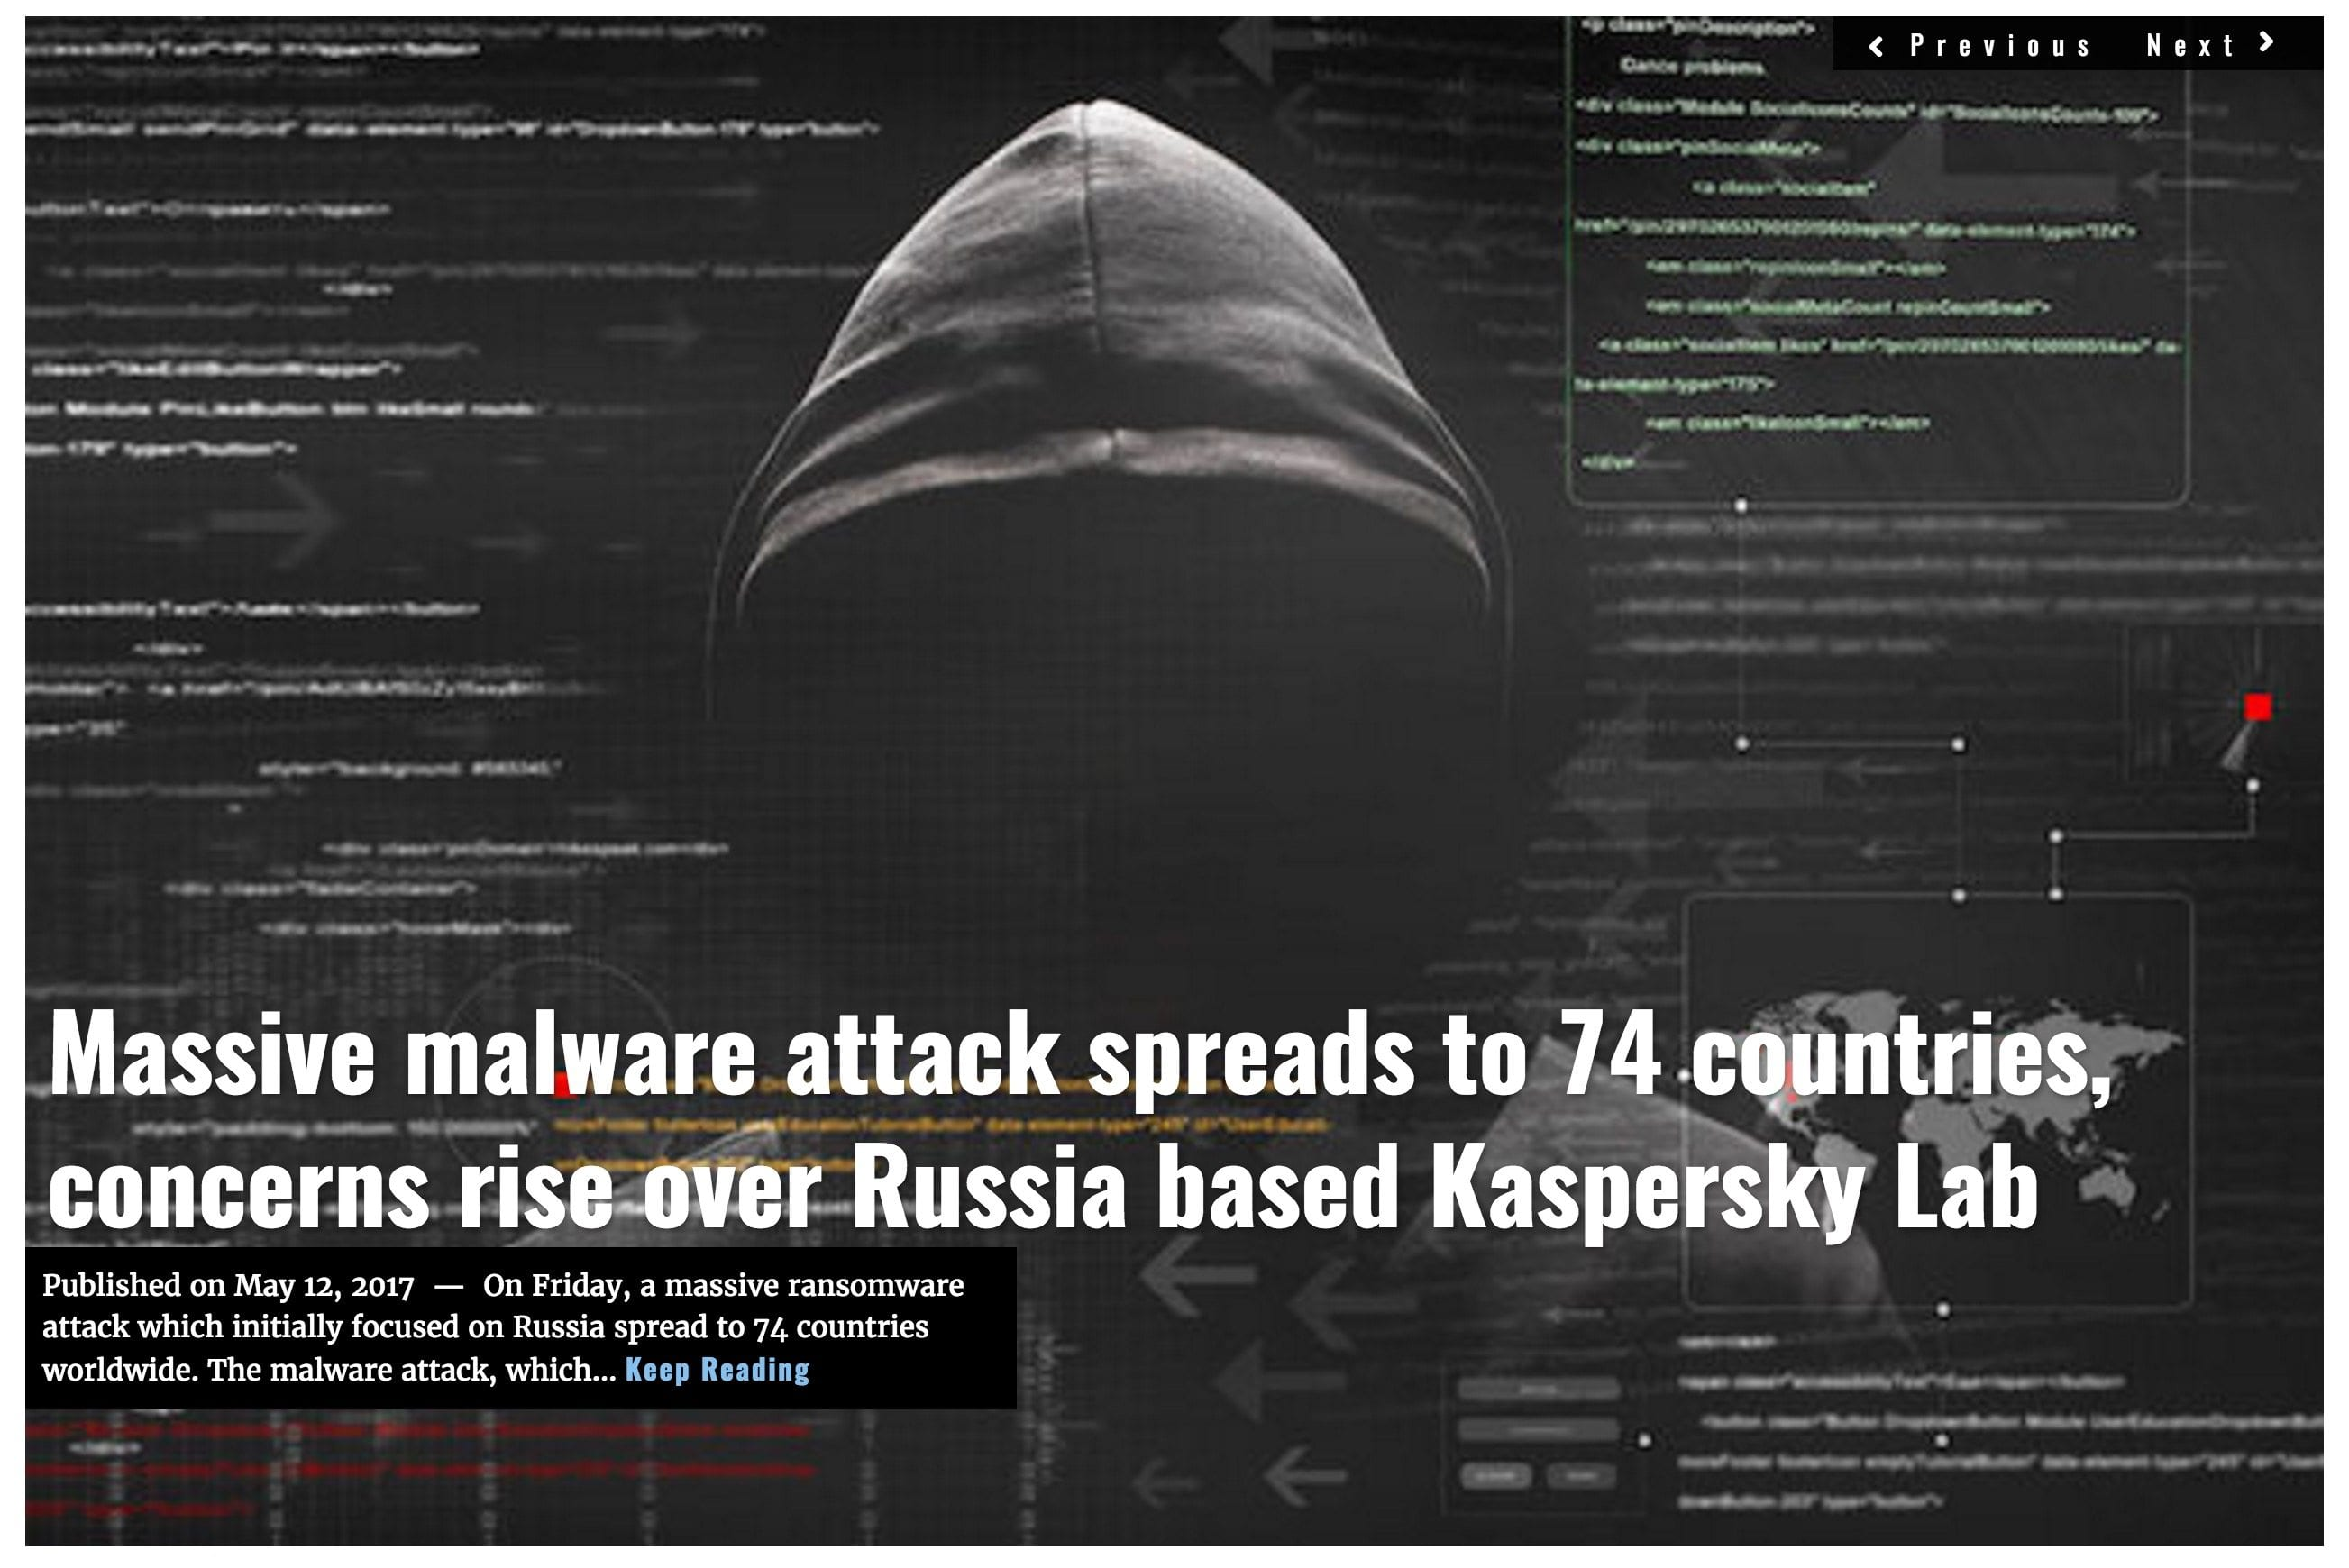 Image Lima Charlie News headline Malware attack MAY12